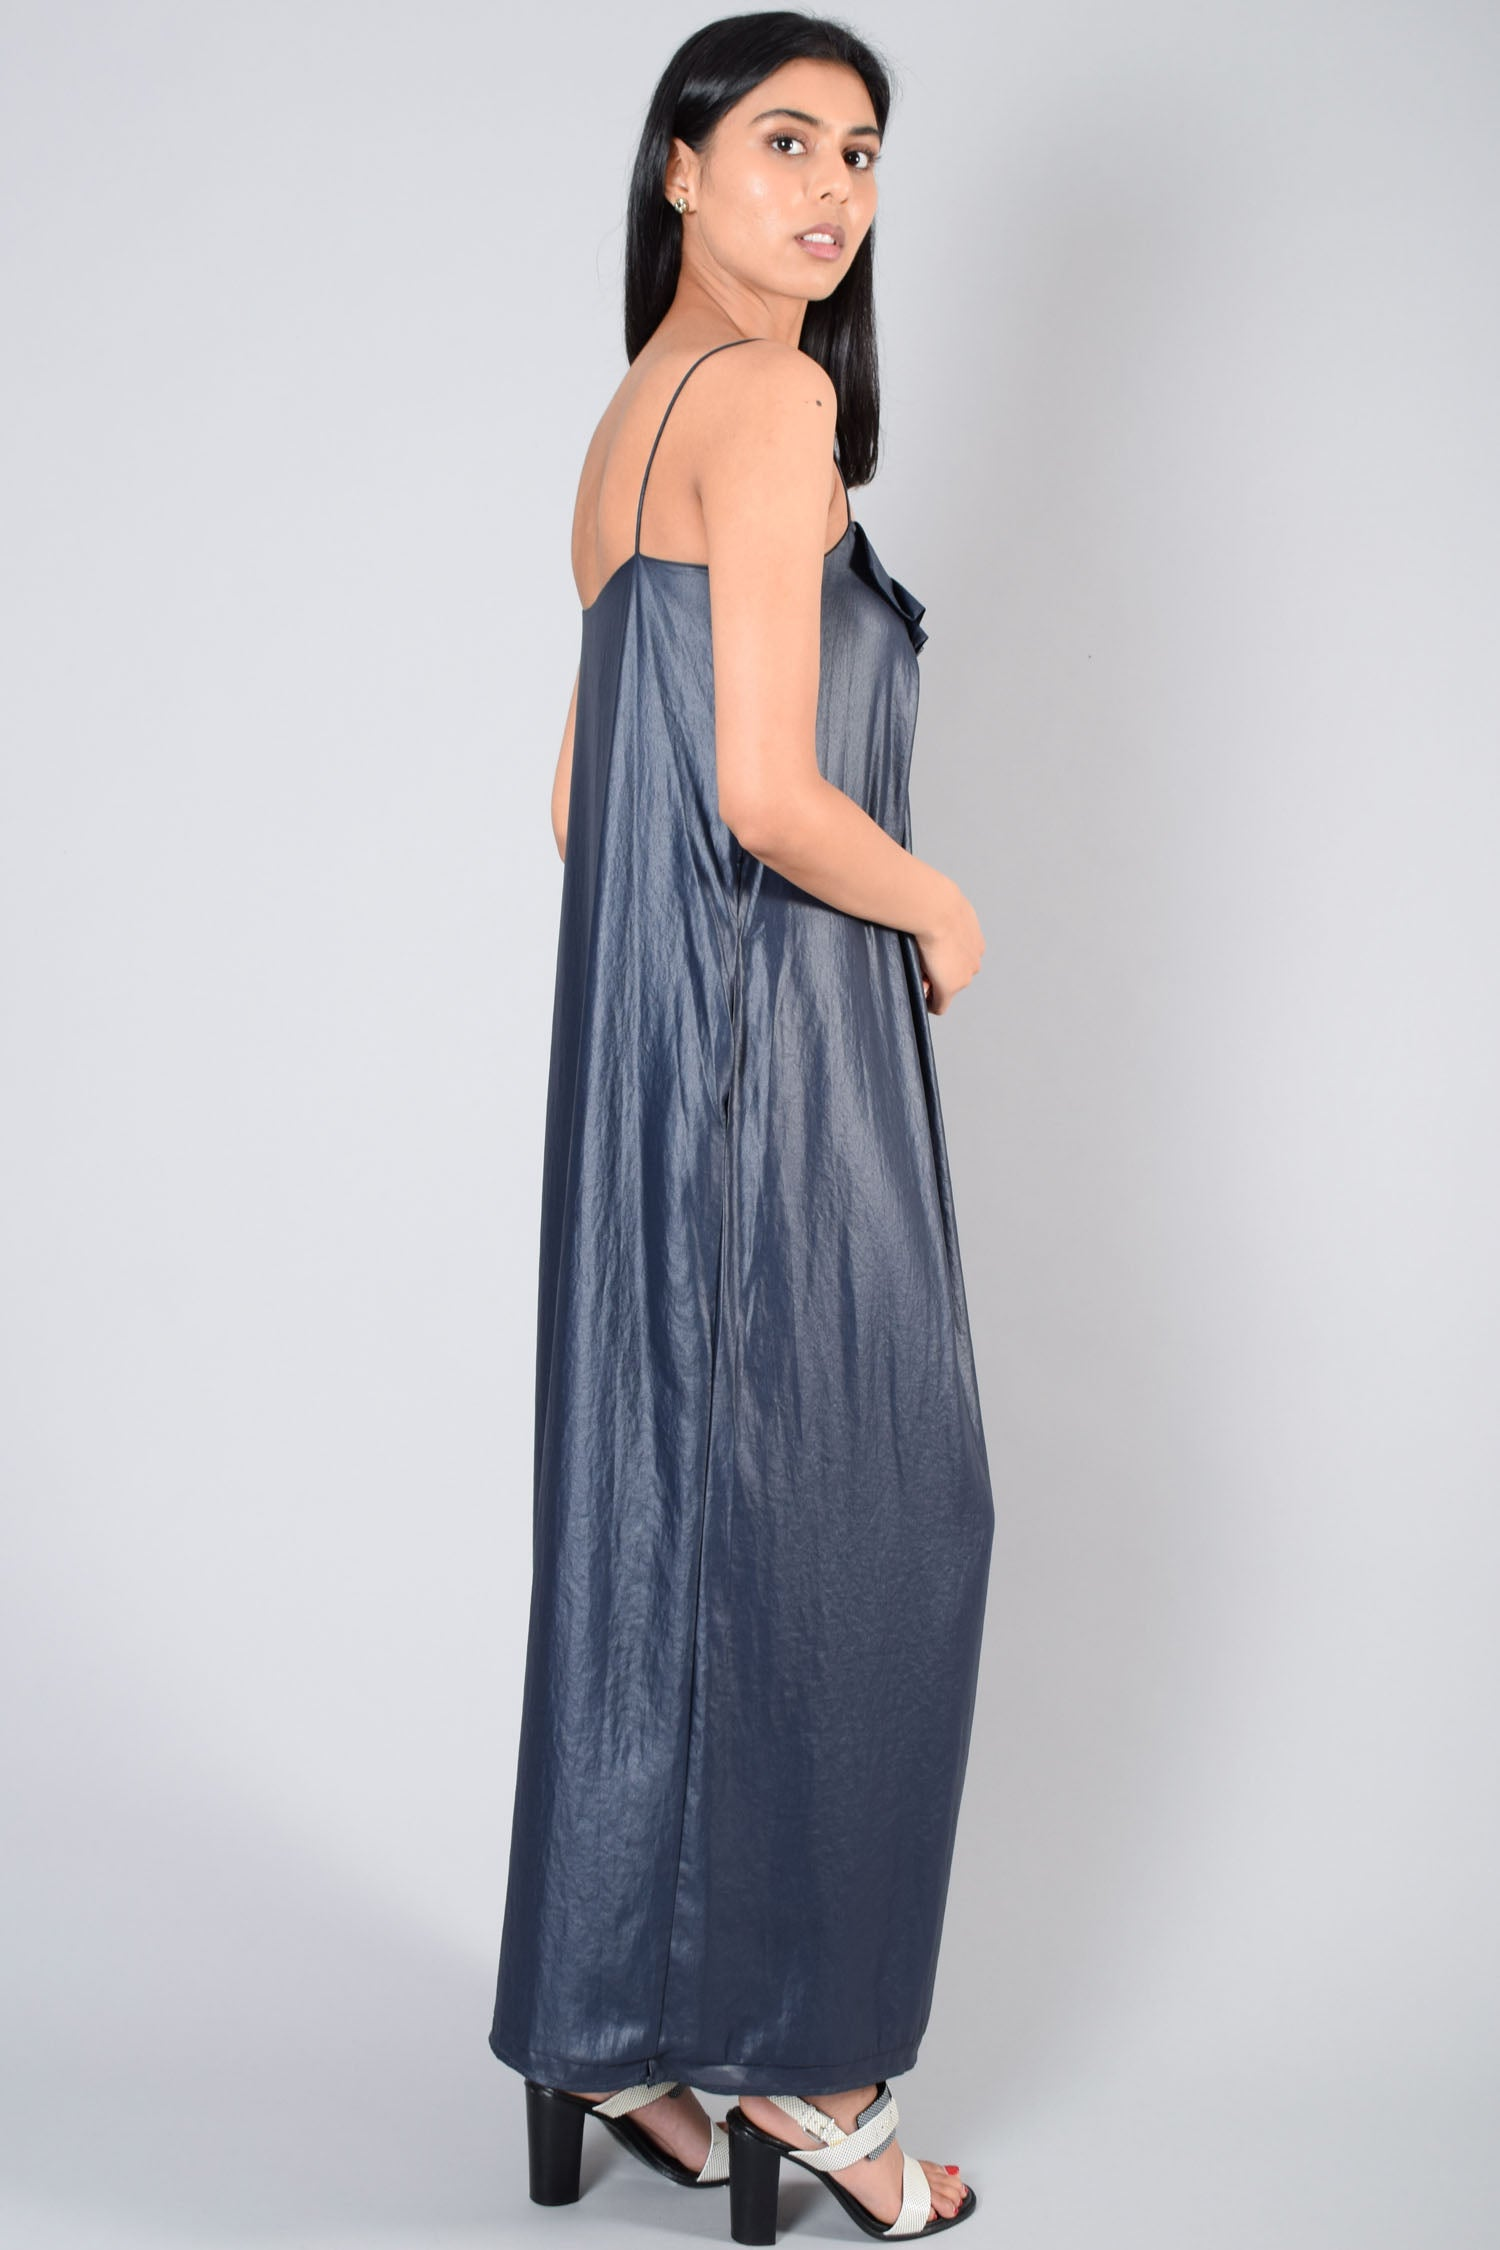 L'Agence Navy Sleeveless Maxi Dress Size 1